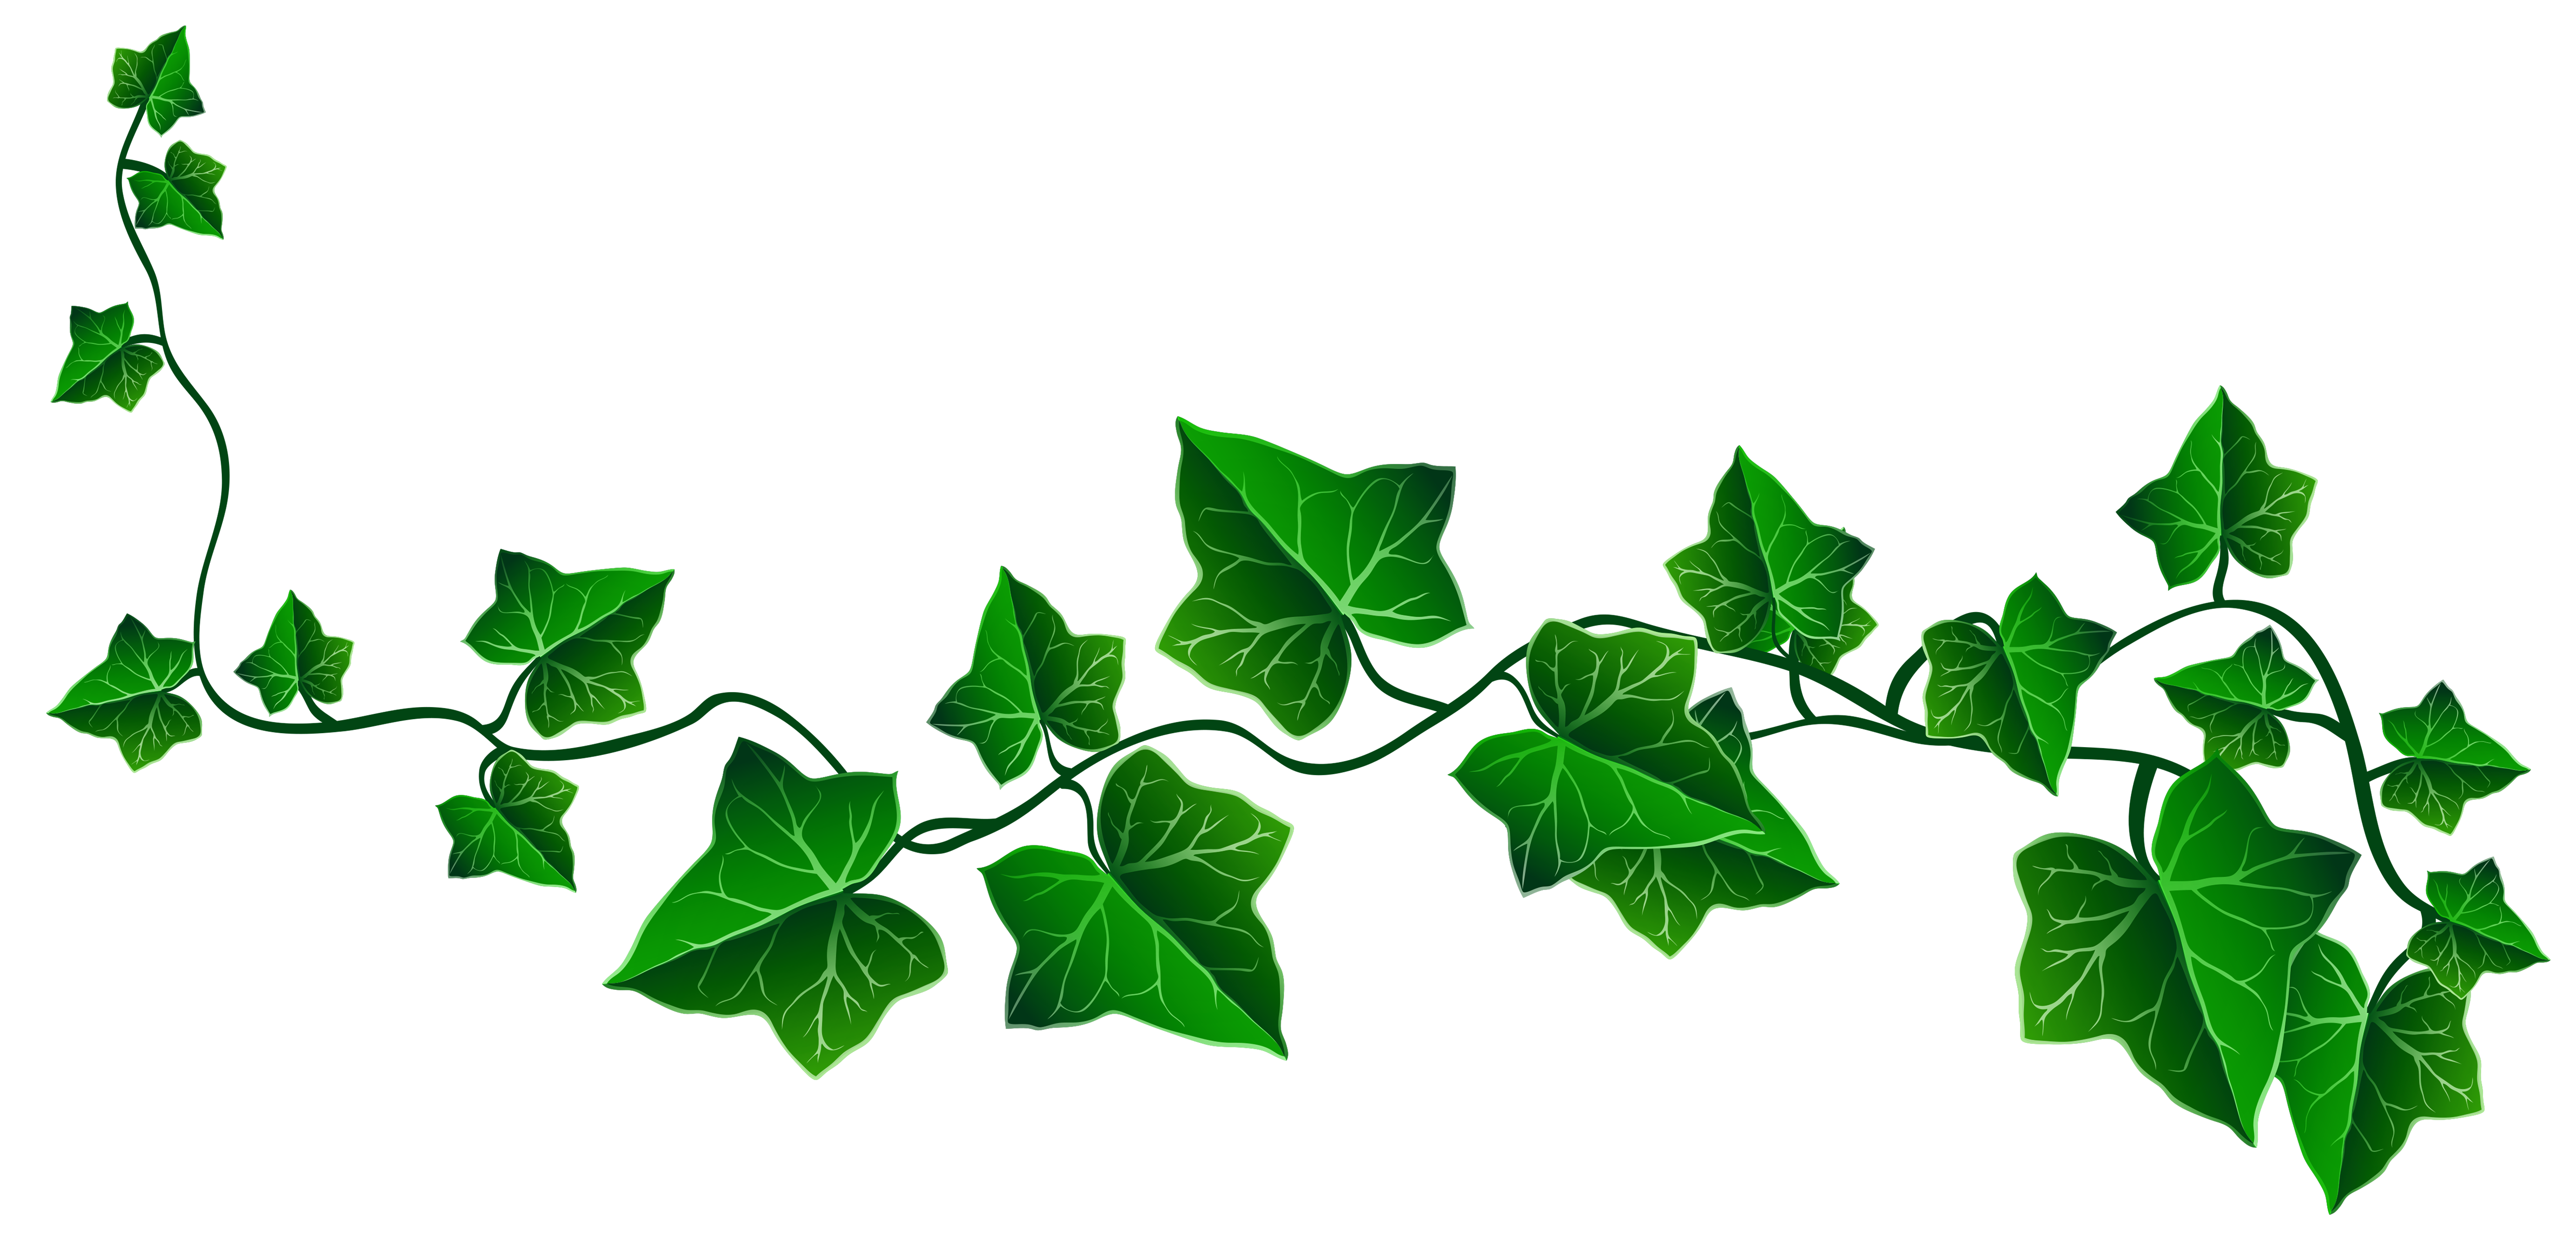 Ivy clipart #3, Download drawings